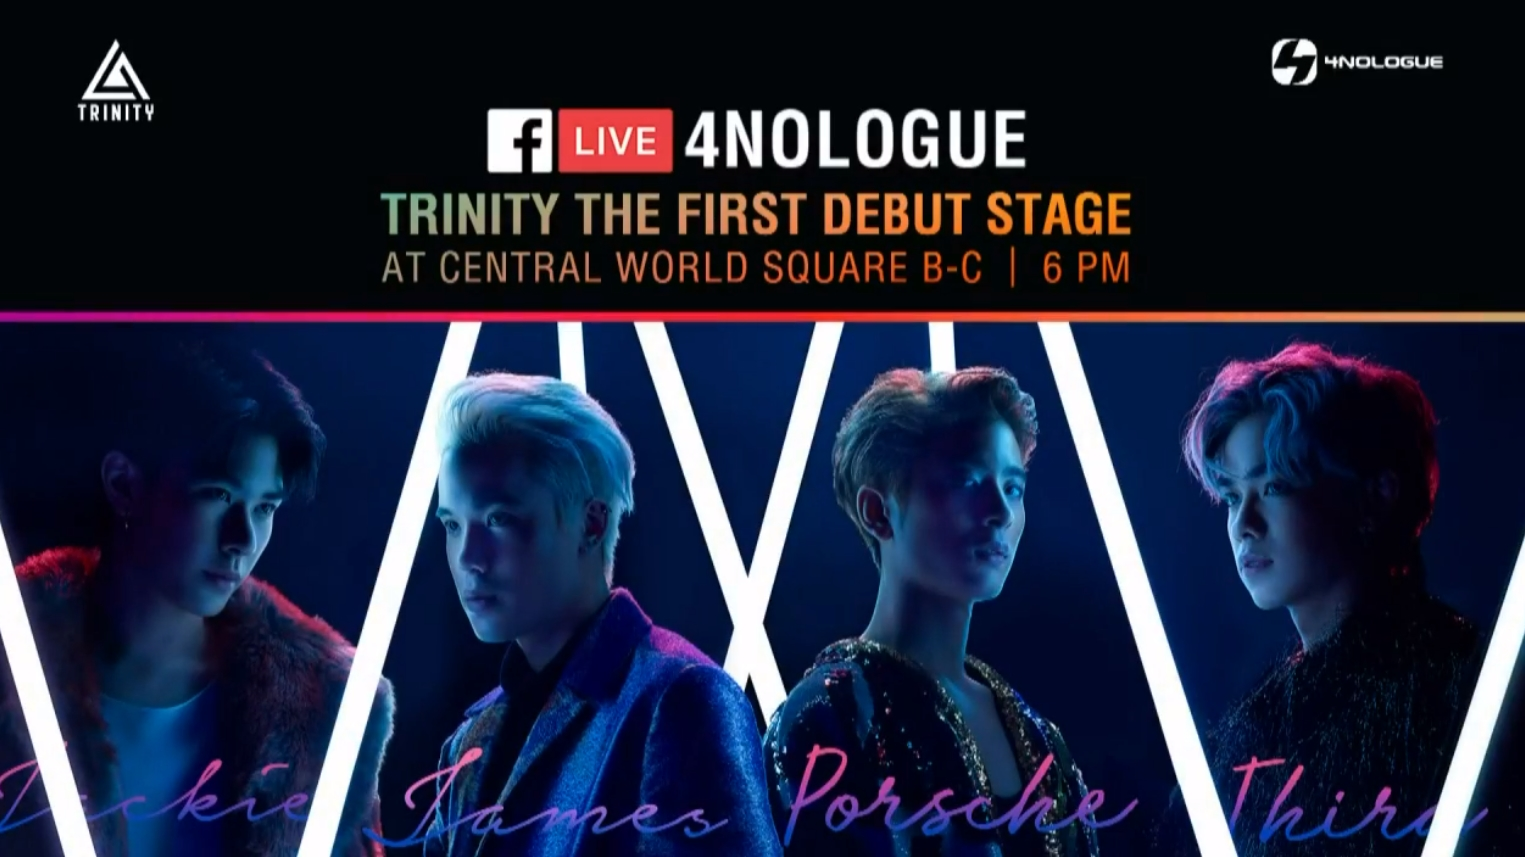 ชมย้อนหลัง 4NOLOGUE | Trinity the First Debut Stage